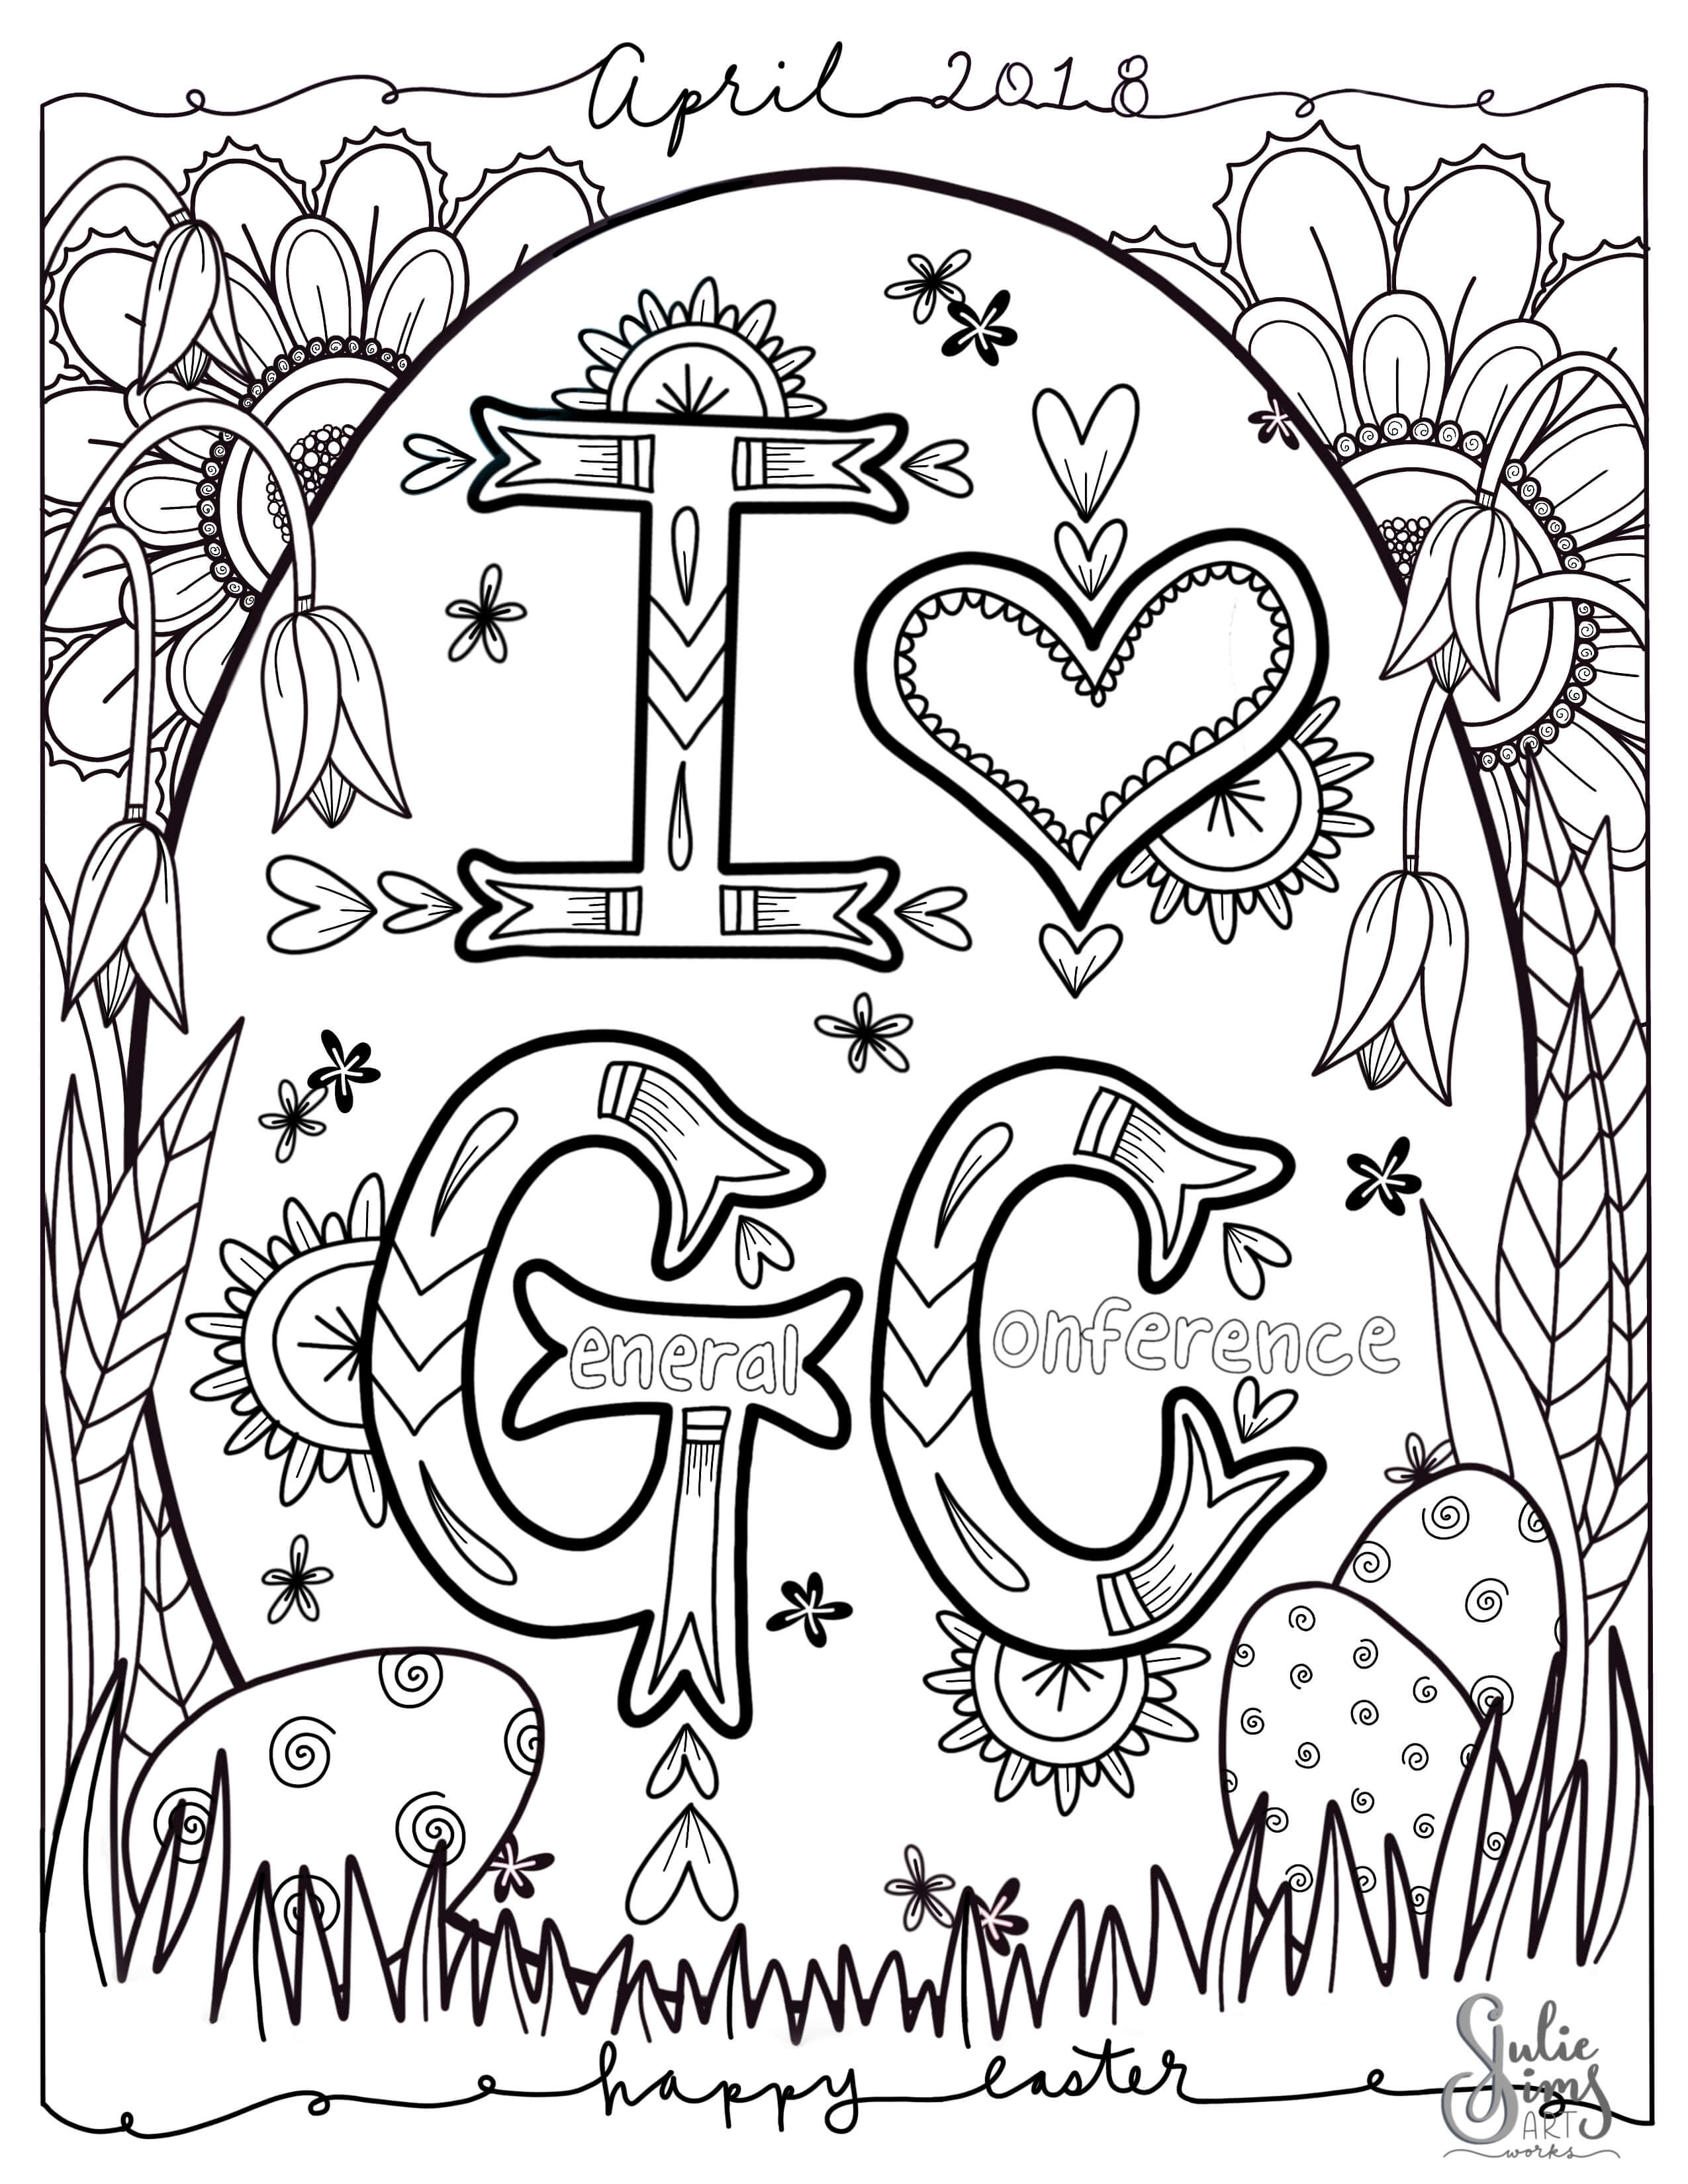 Coloring page, April '18 General Conference